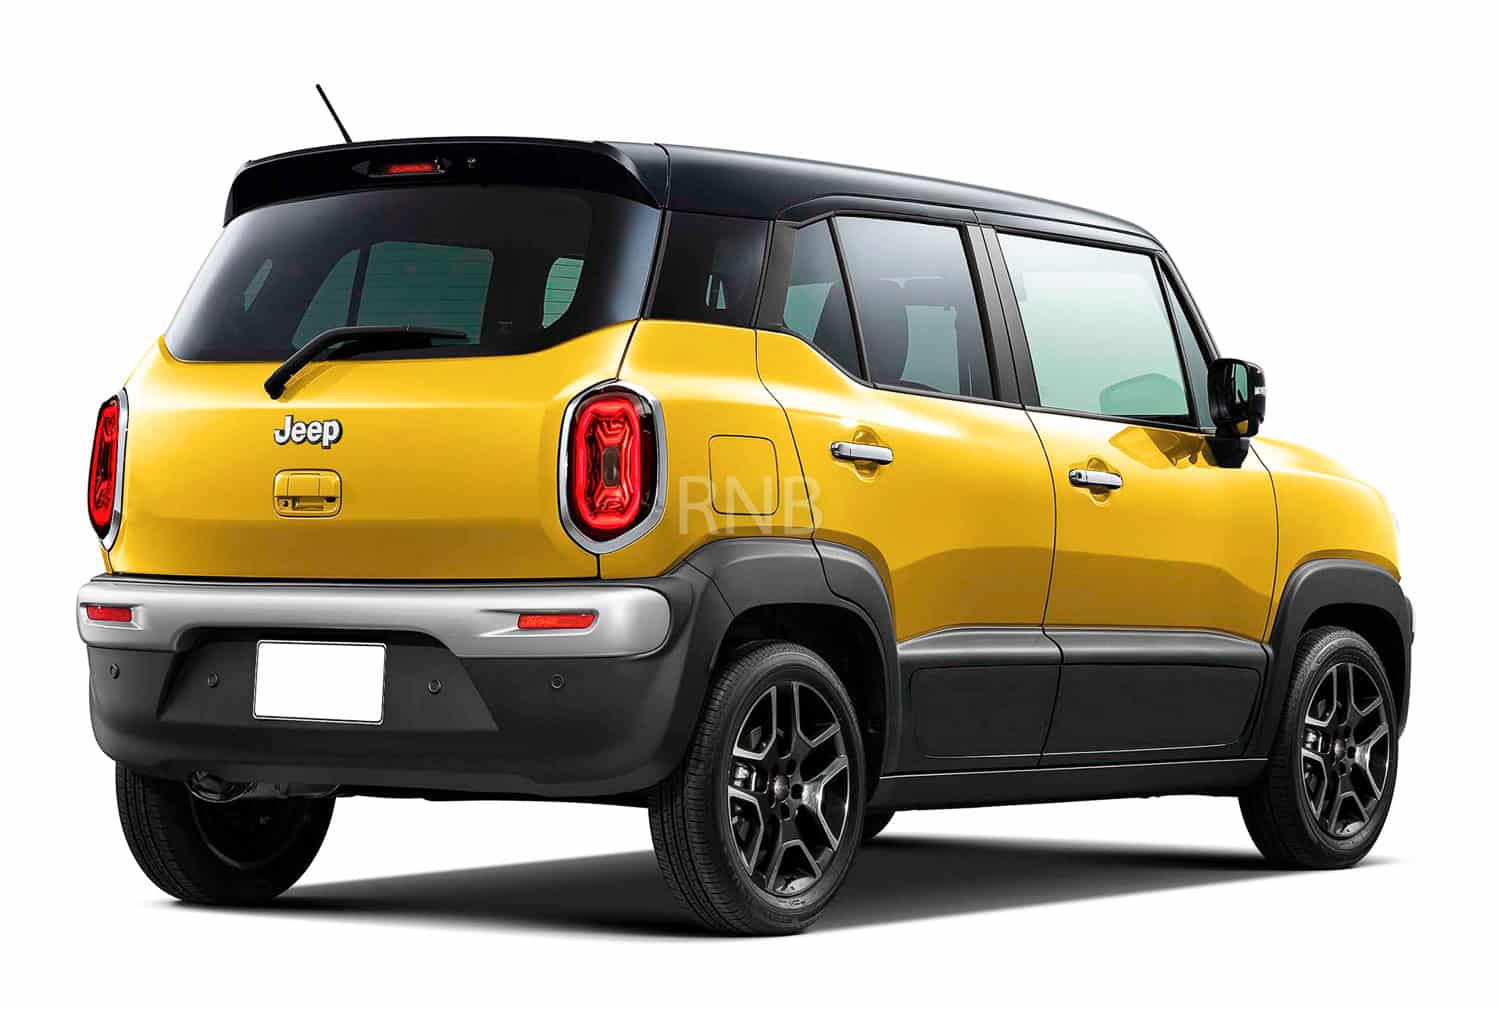 Jeep Renegade sub 4 meter Render